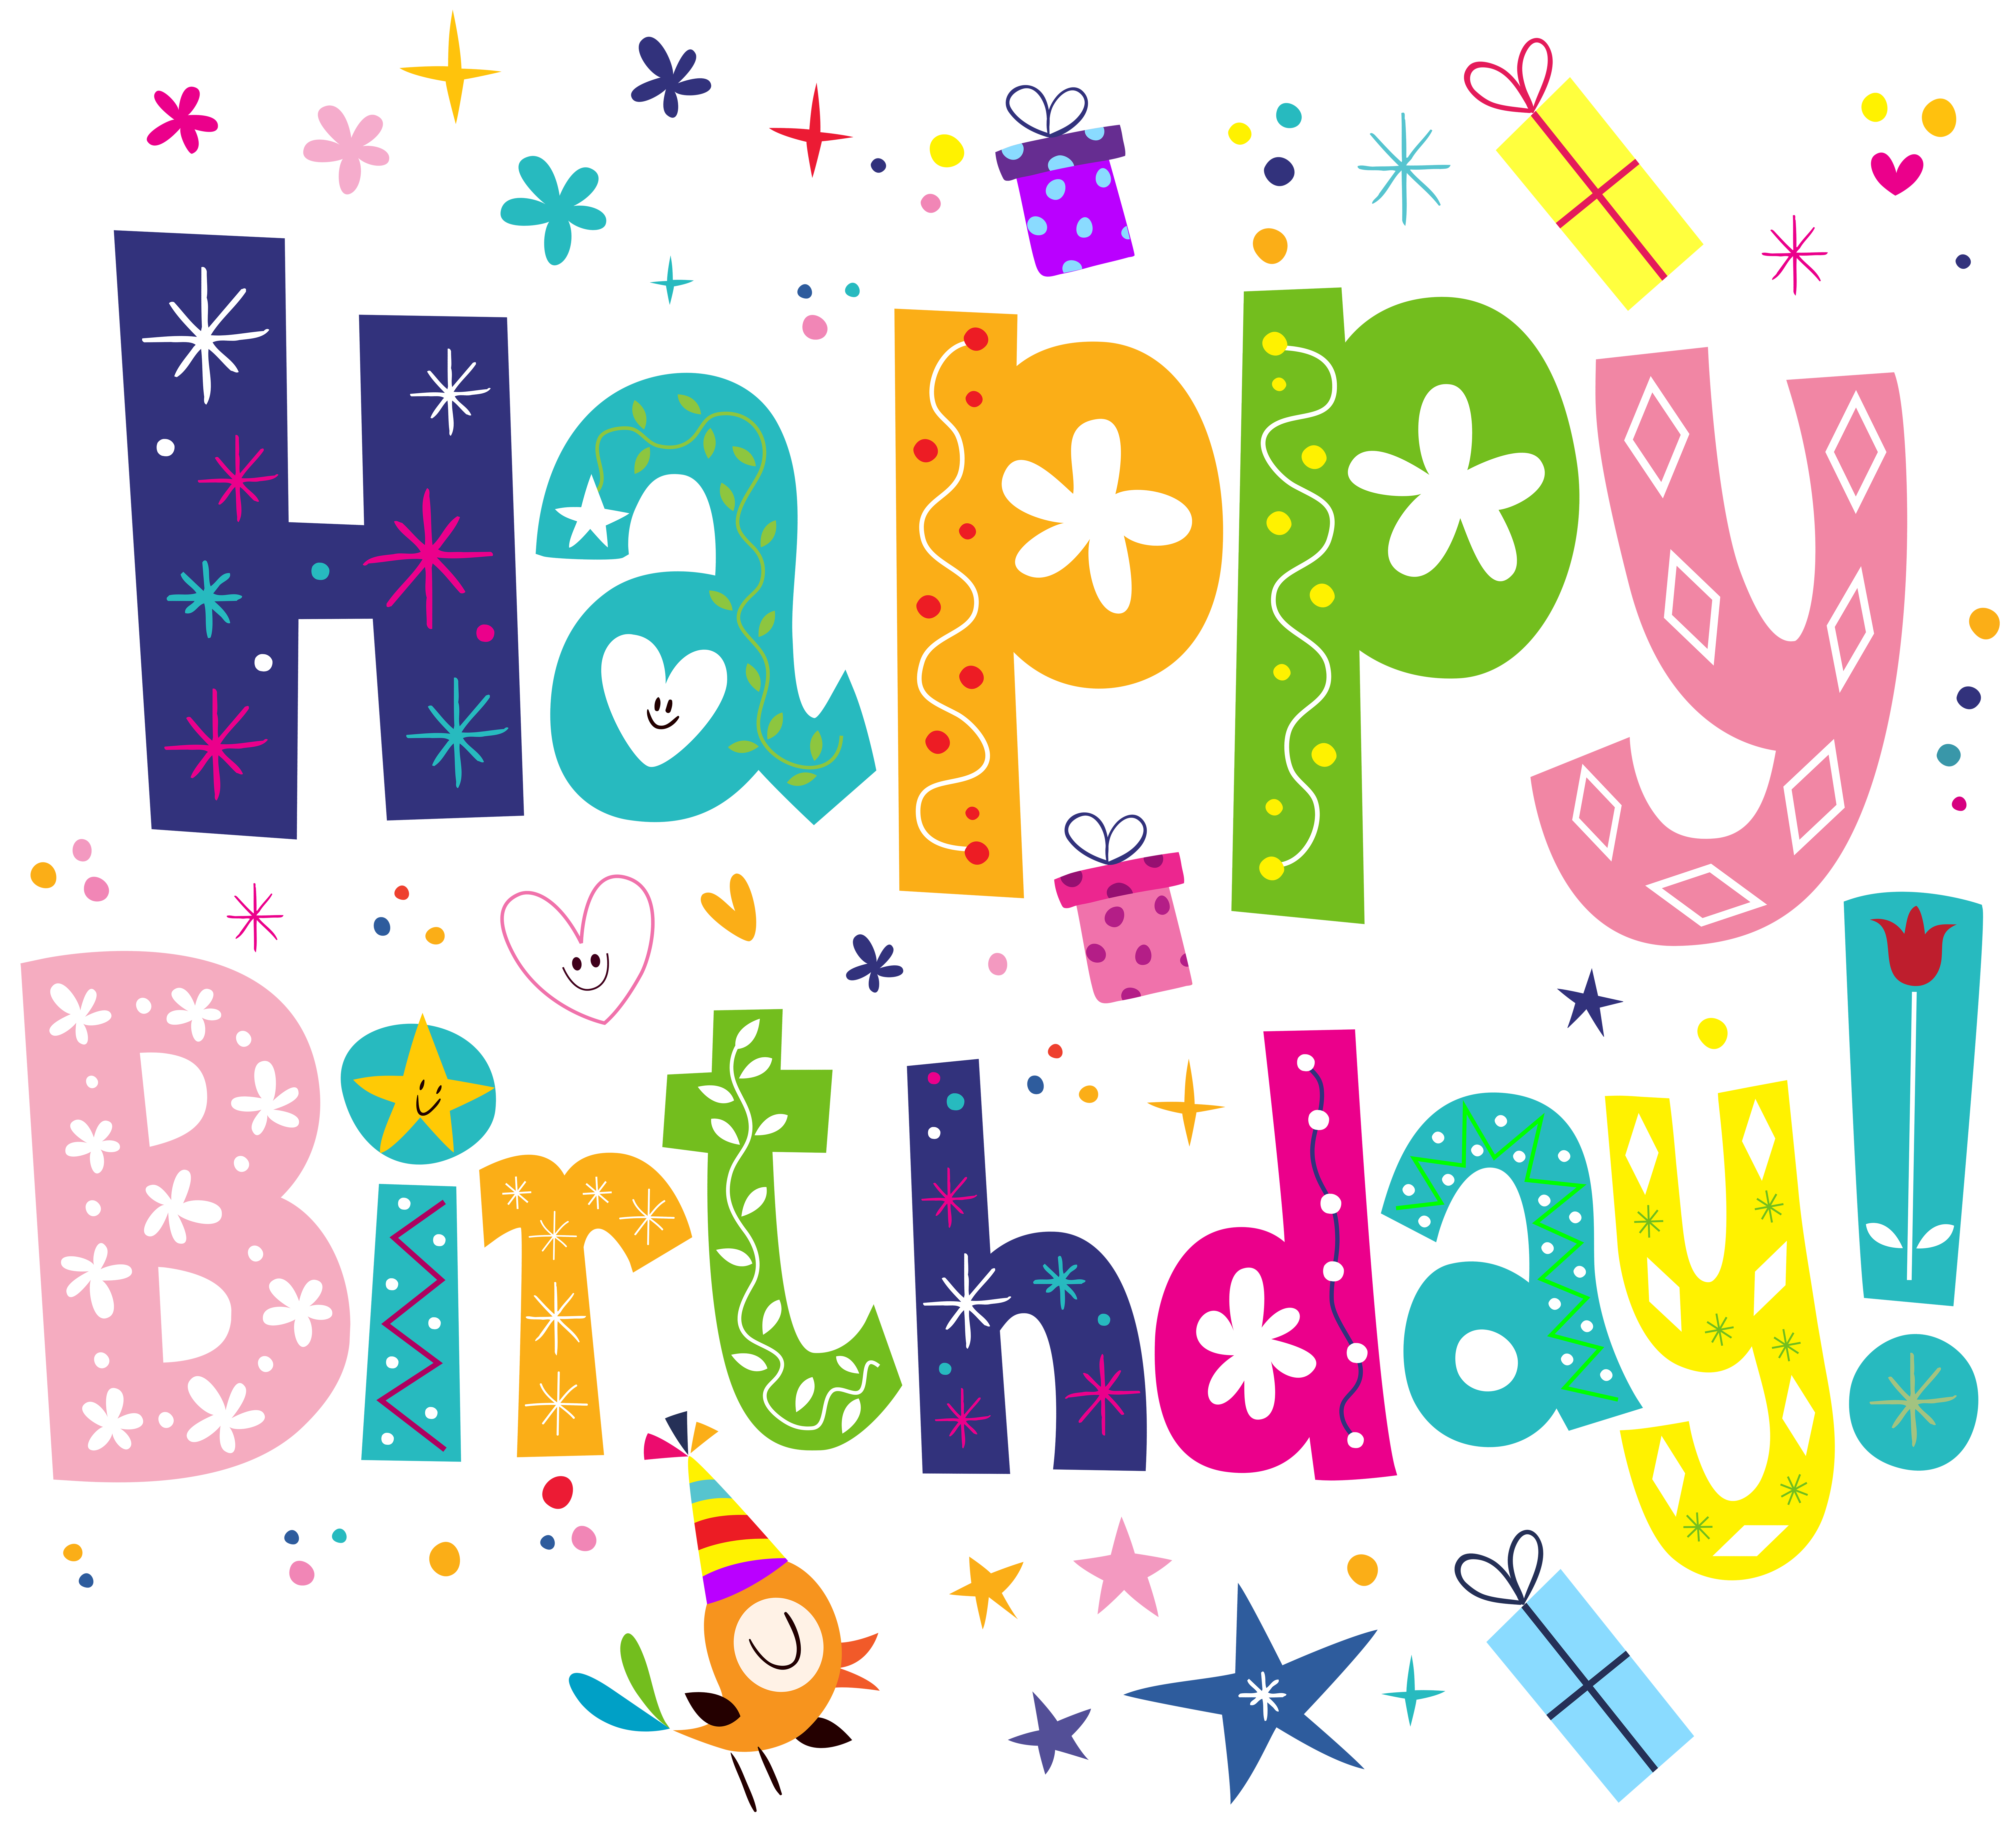 Happy birthday png transparent. Cute clip art image